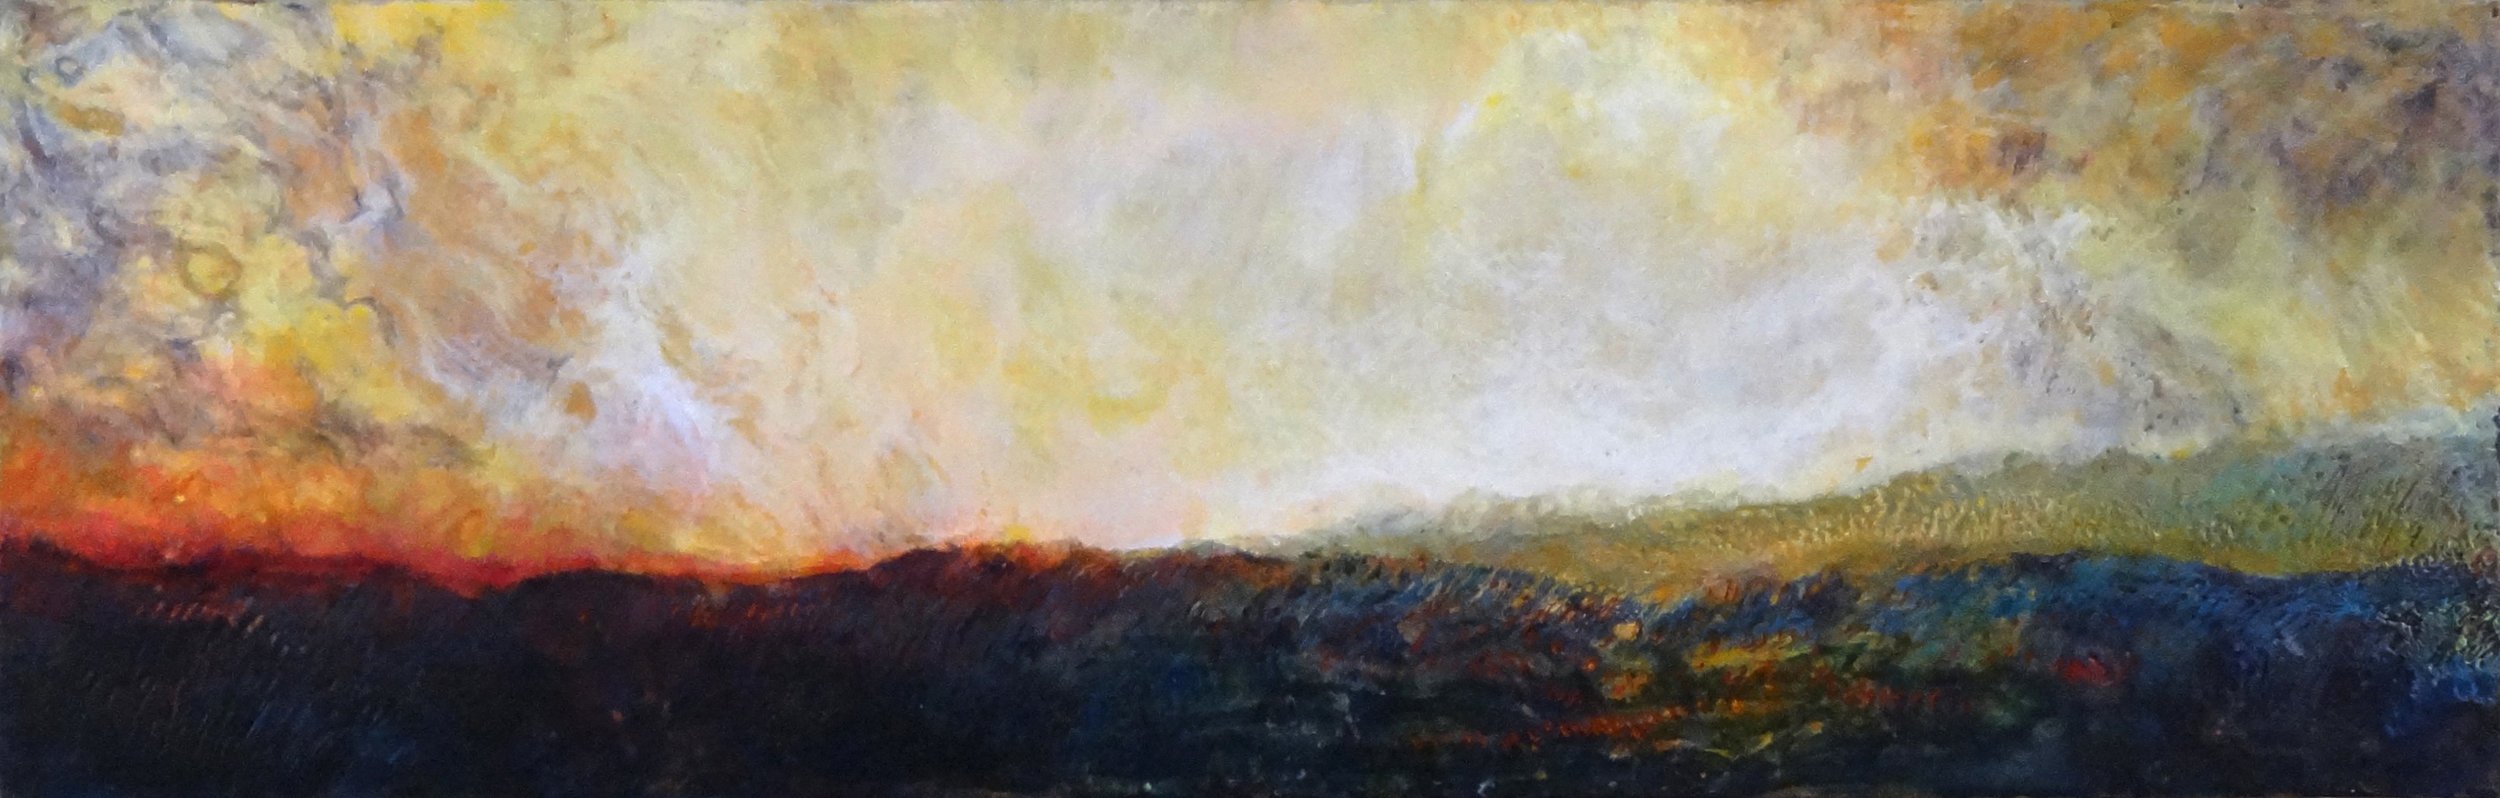 Encaustic Sunrise - SOLD